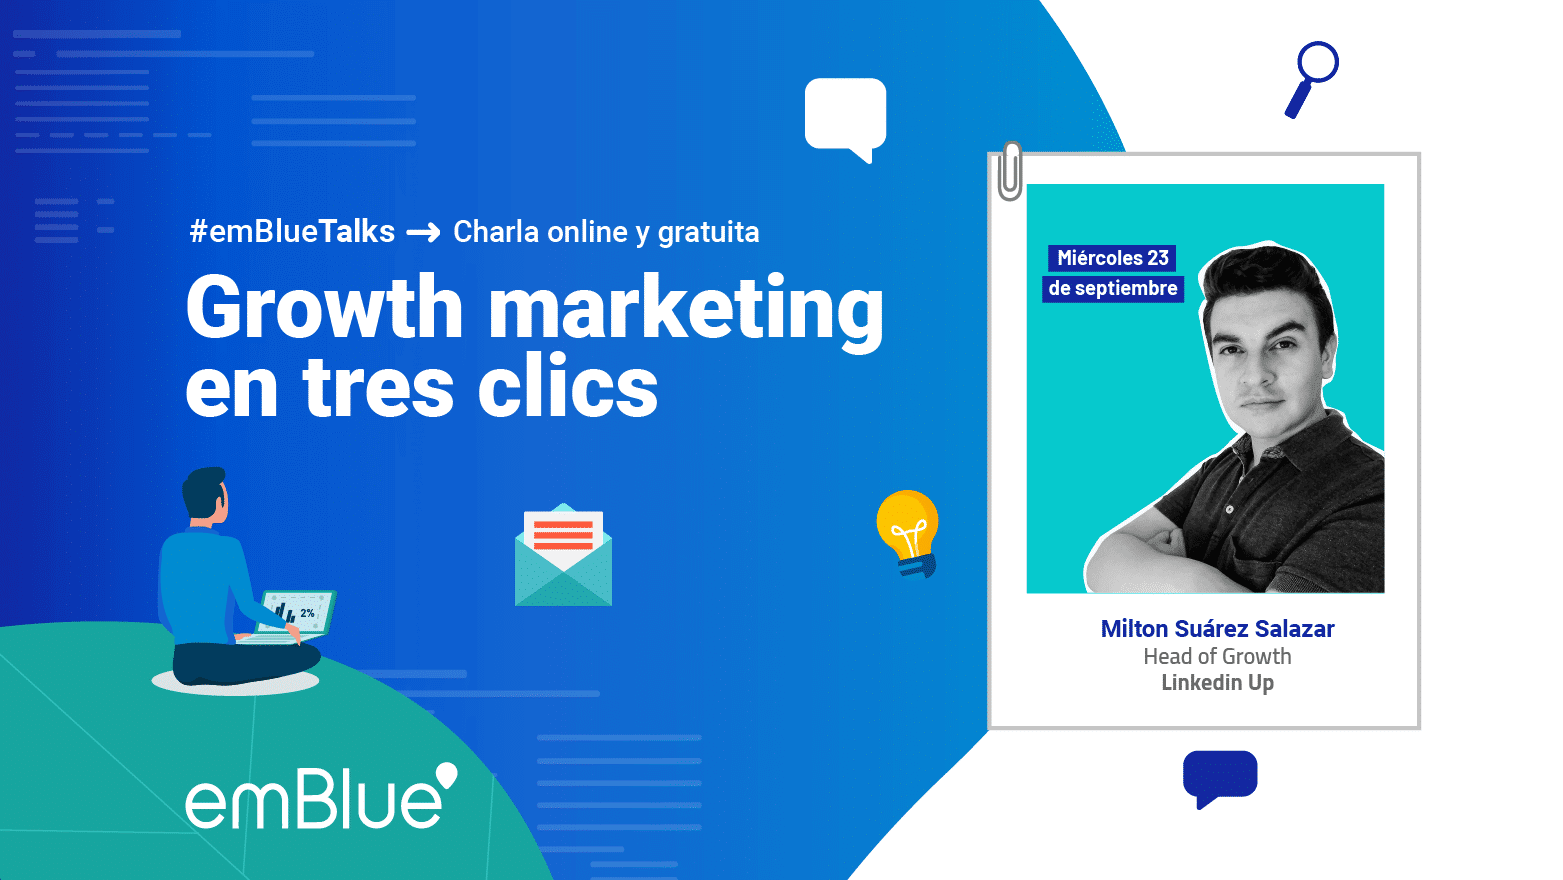 #emBlueTalks: growth marketing en tres clics